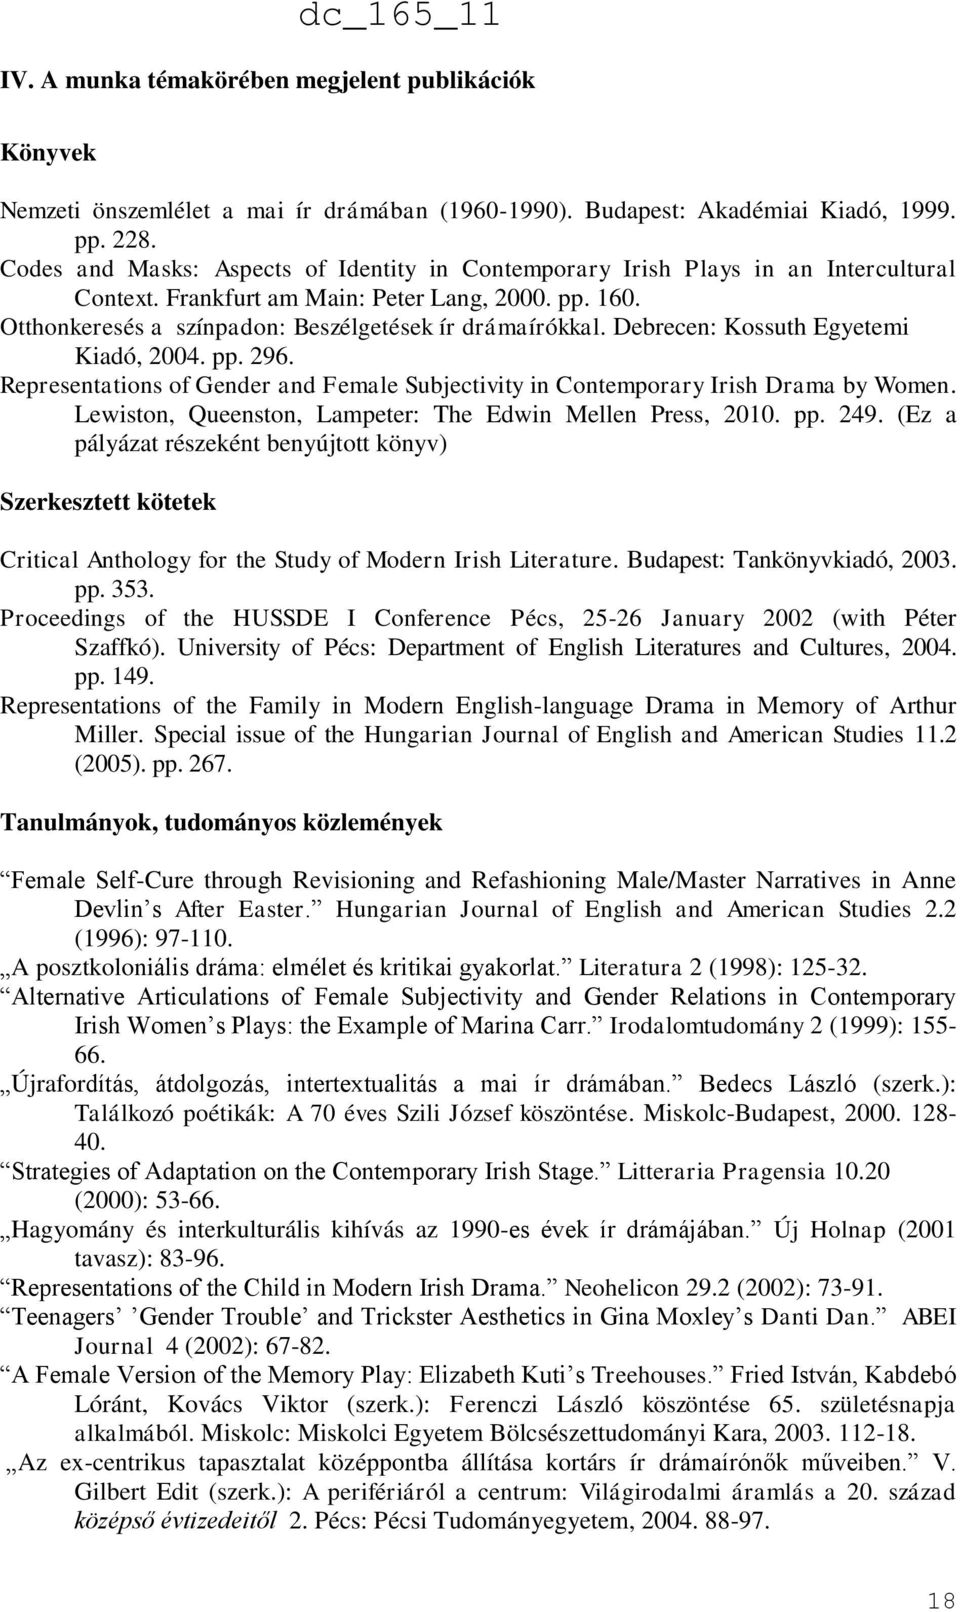 Debrecen: Kossuth Egyetemi Kiadó, 2004. pp. 296. Representations of Gender and Female Subjectivity in Contemporary Irish Drama by Women. Lewiston, Queenston, Lampeter: The Edwin Mellen Press, 2010.